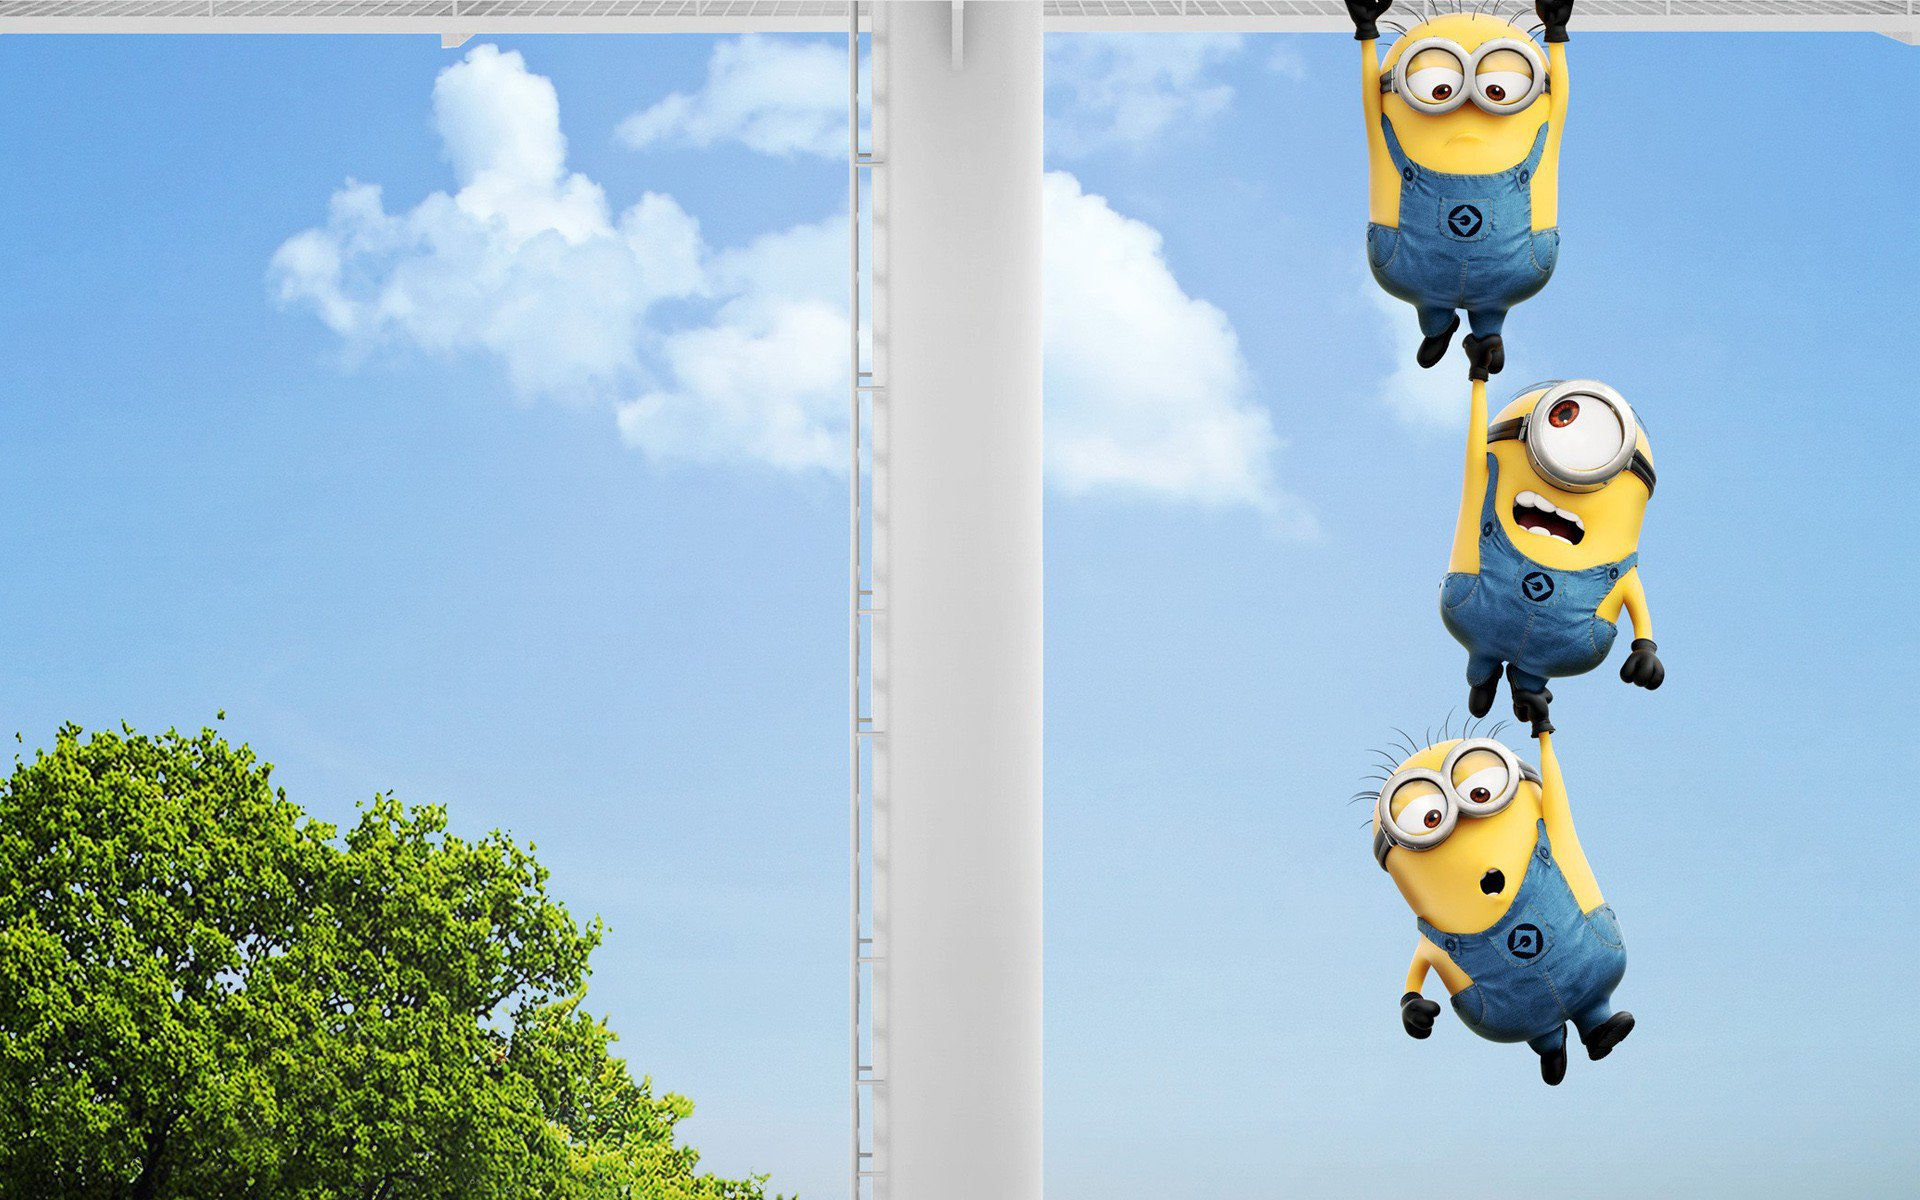 3840x2400 Minions Poster 4k HD 4k Wallpapers, Images